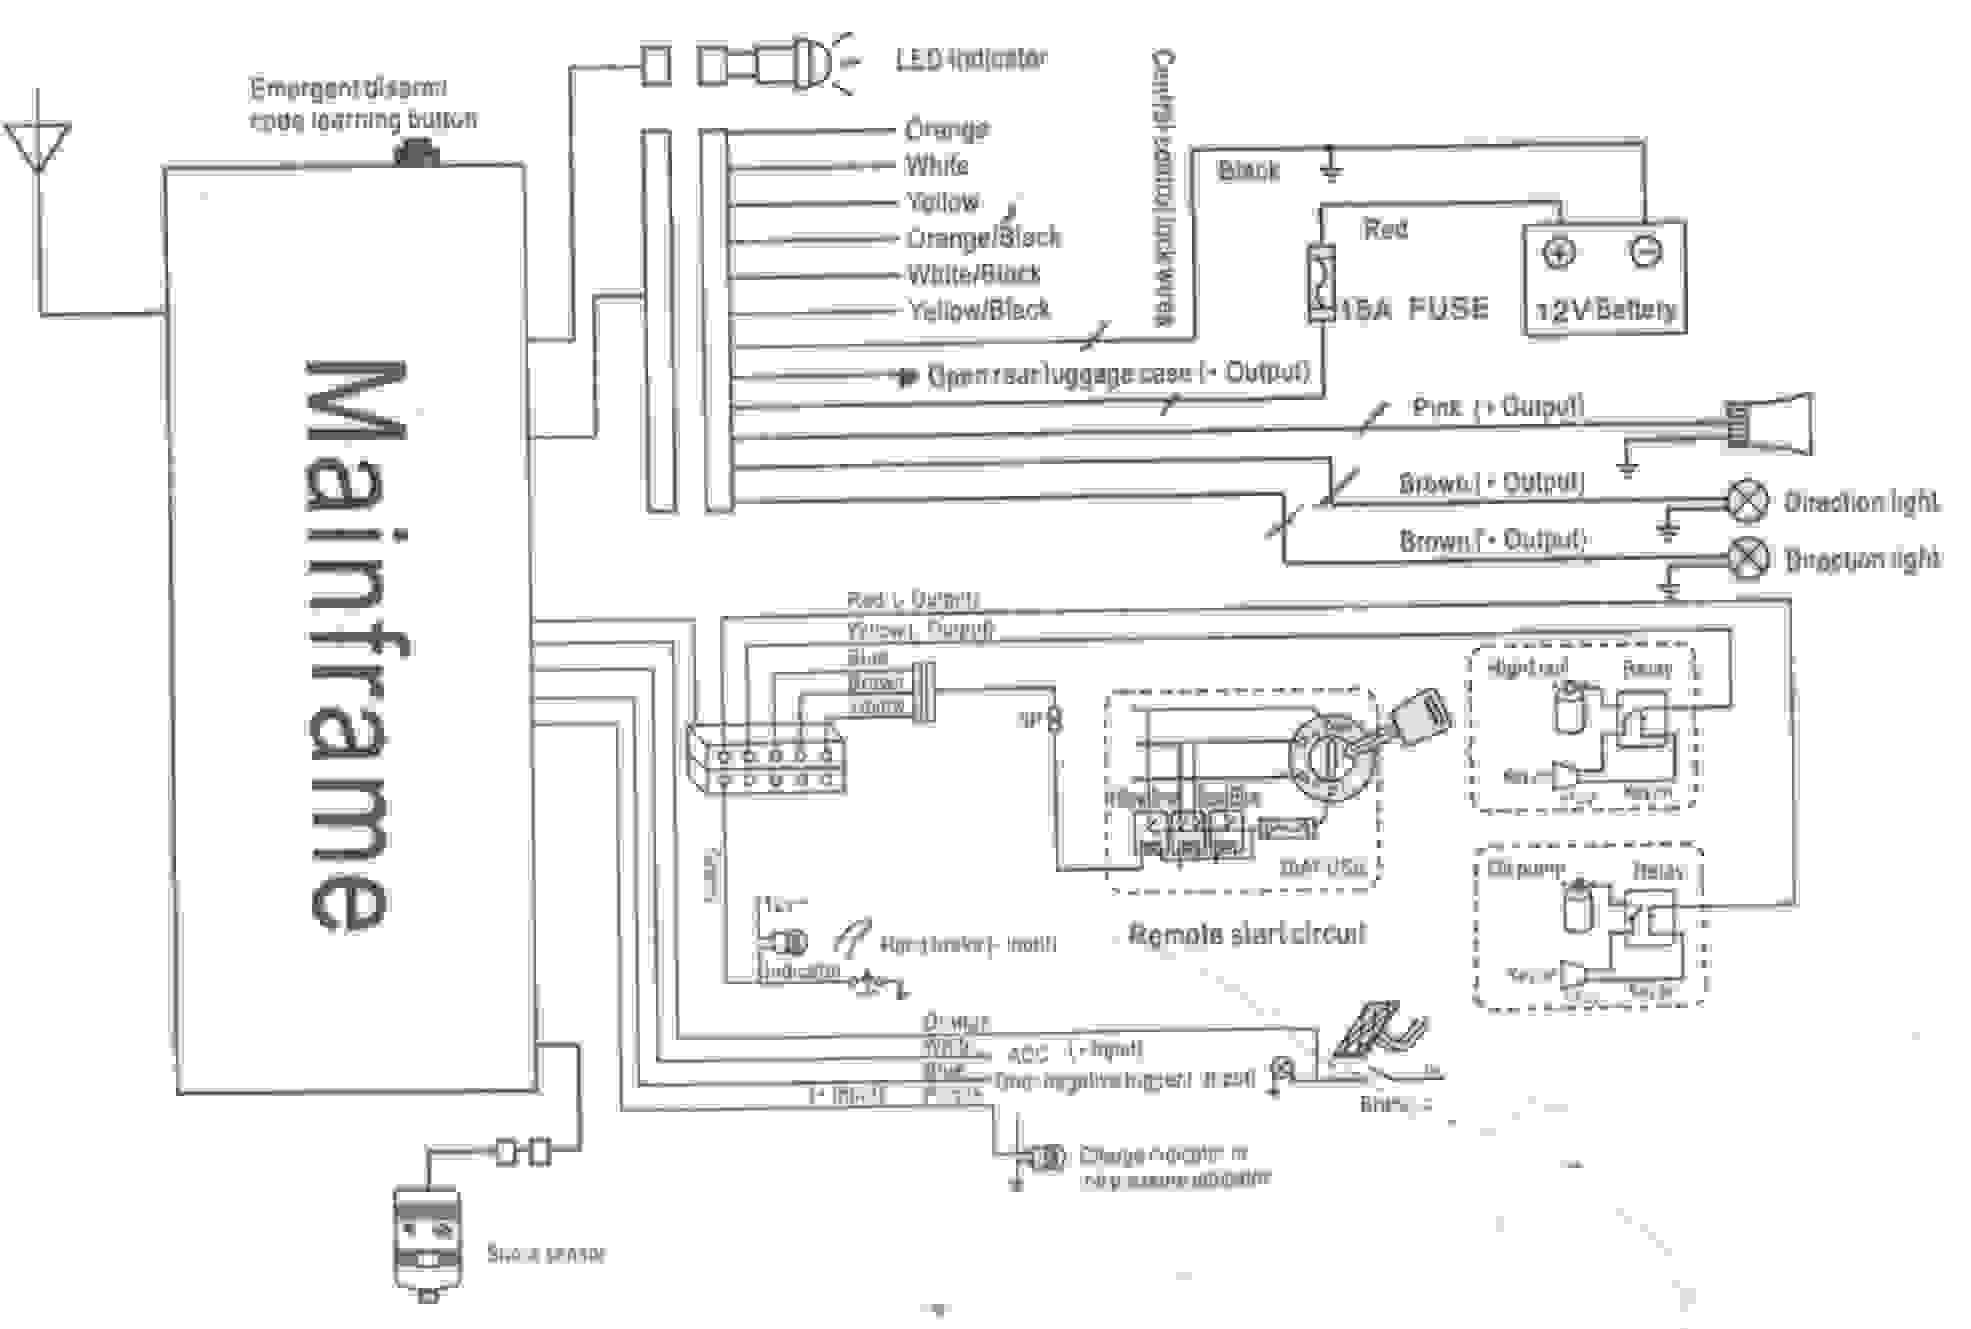 chapman vehicle security system wiring diagram Download-Wiring Diagram Alarm Motorcycle Inspirationa Car Alarm System Wiring Diagram 8-j